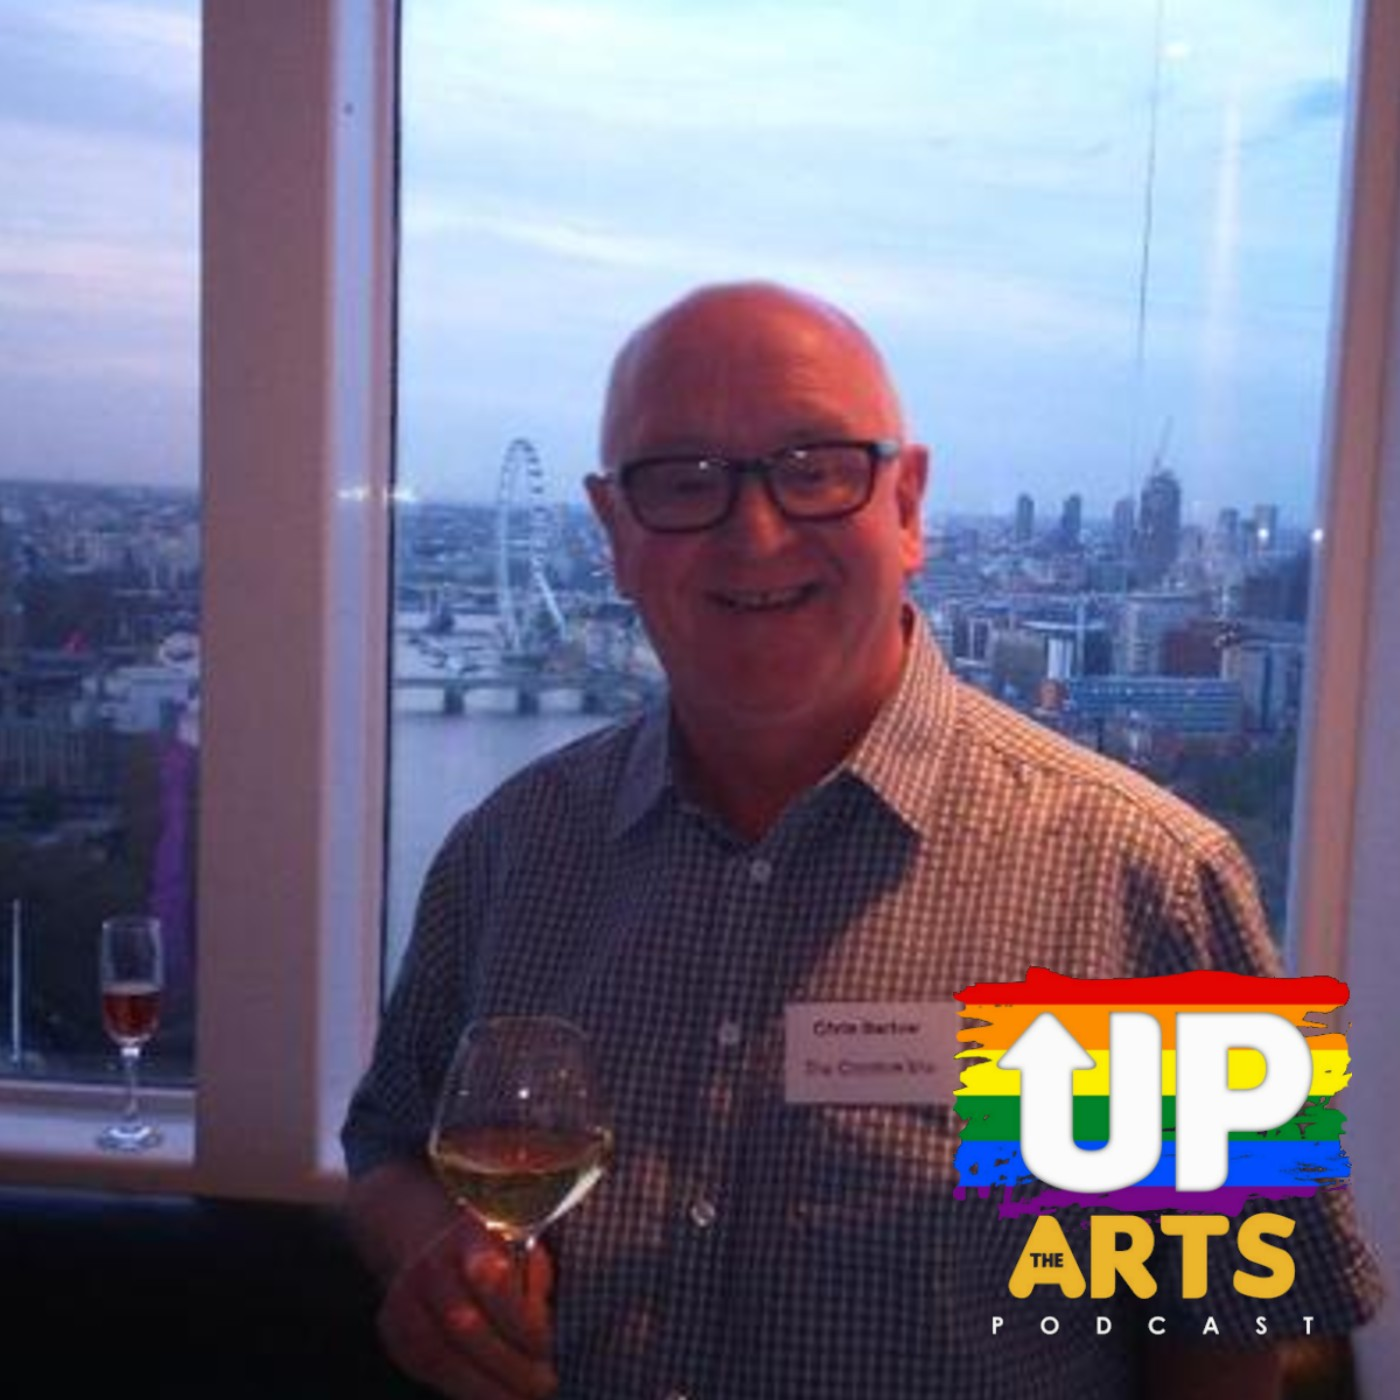 Up The Arts: Stuck Indoors - Chris Barlow on enjoying art whilst stuck indoors via Outings in Art